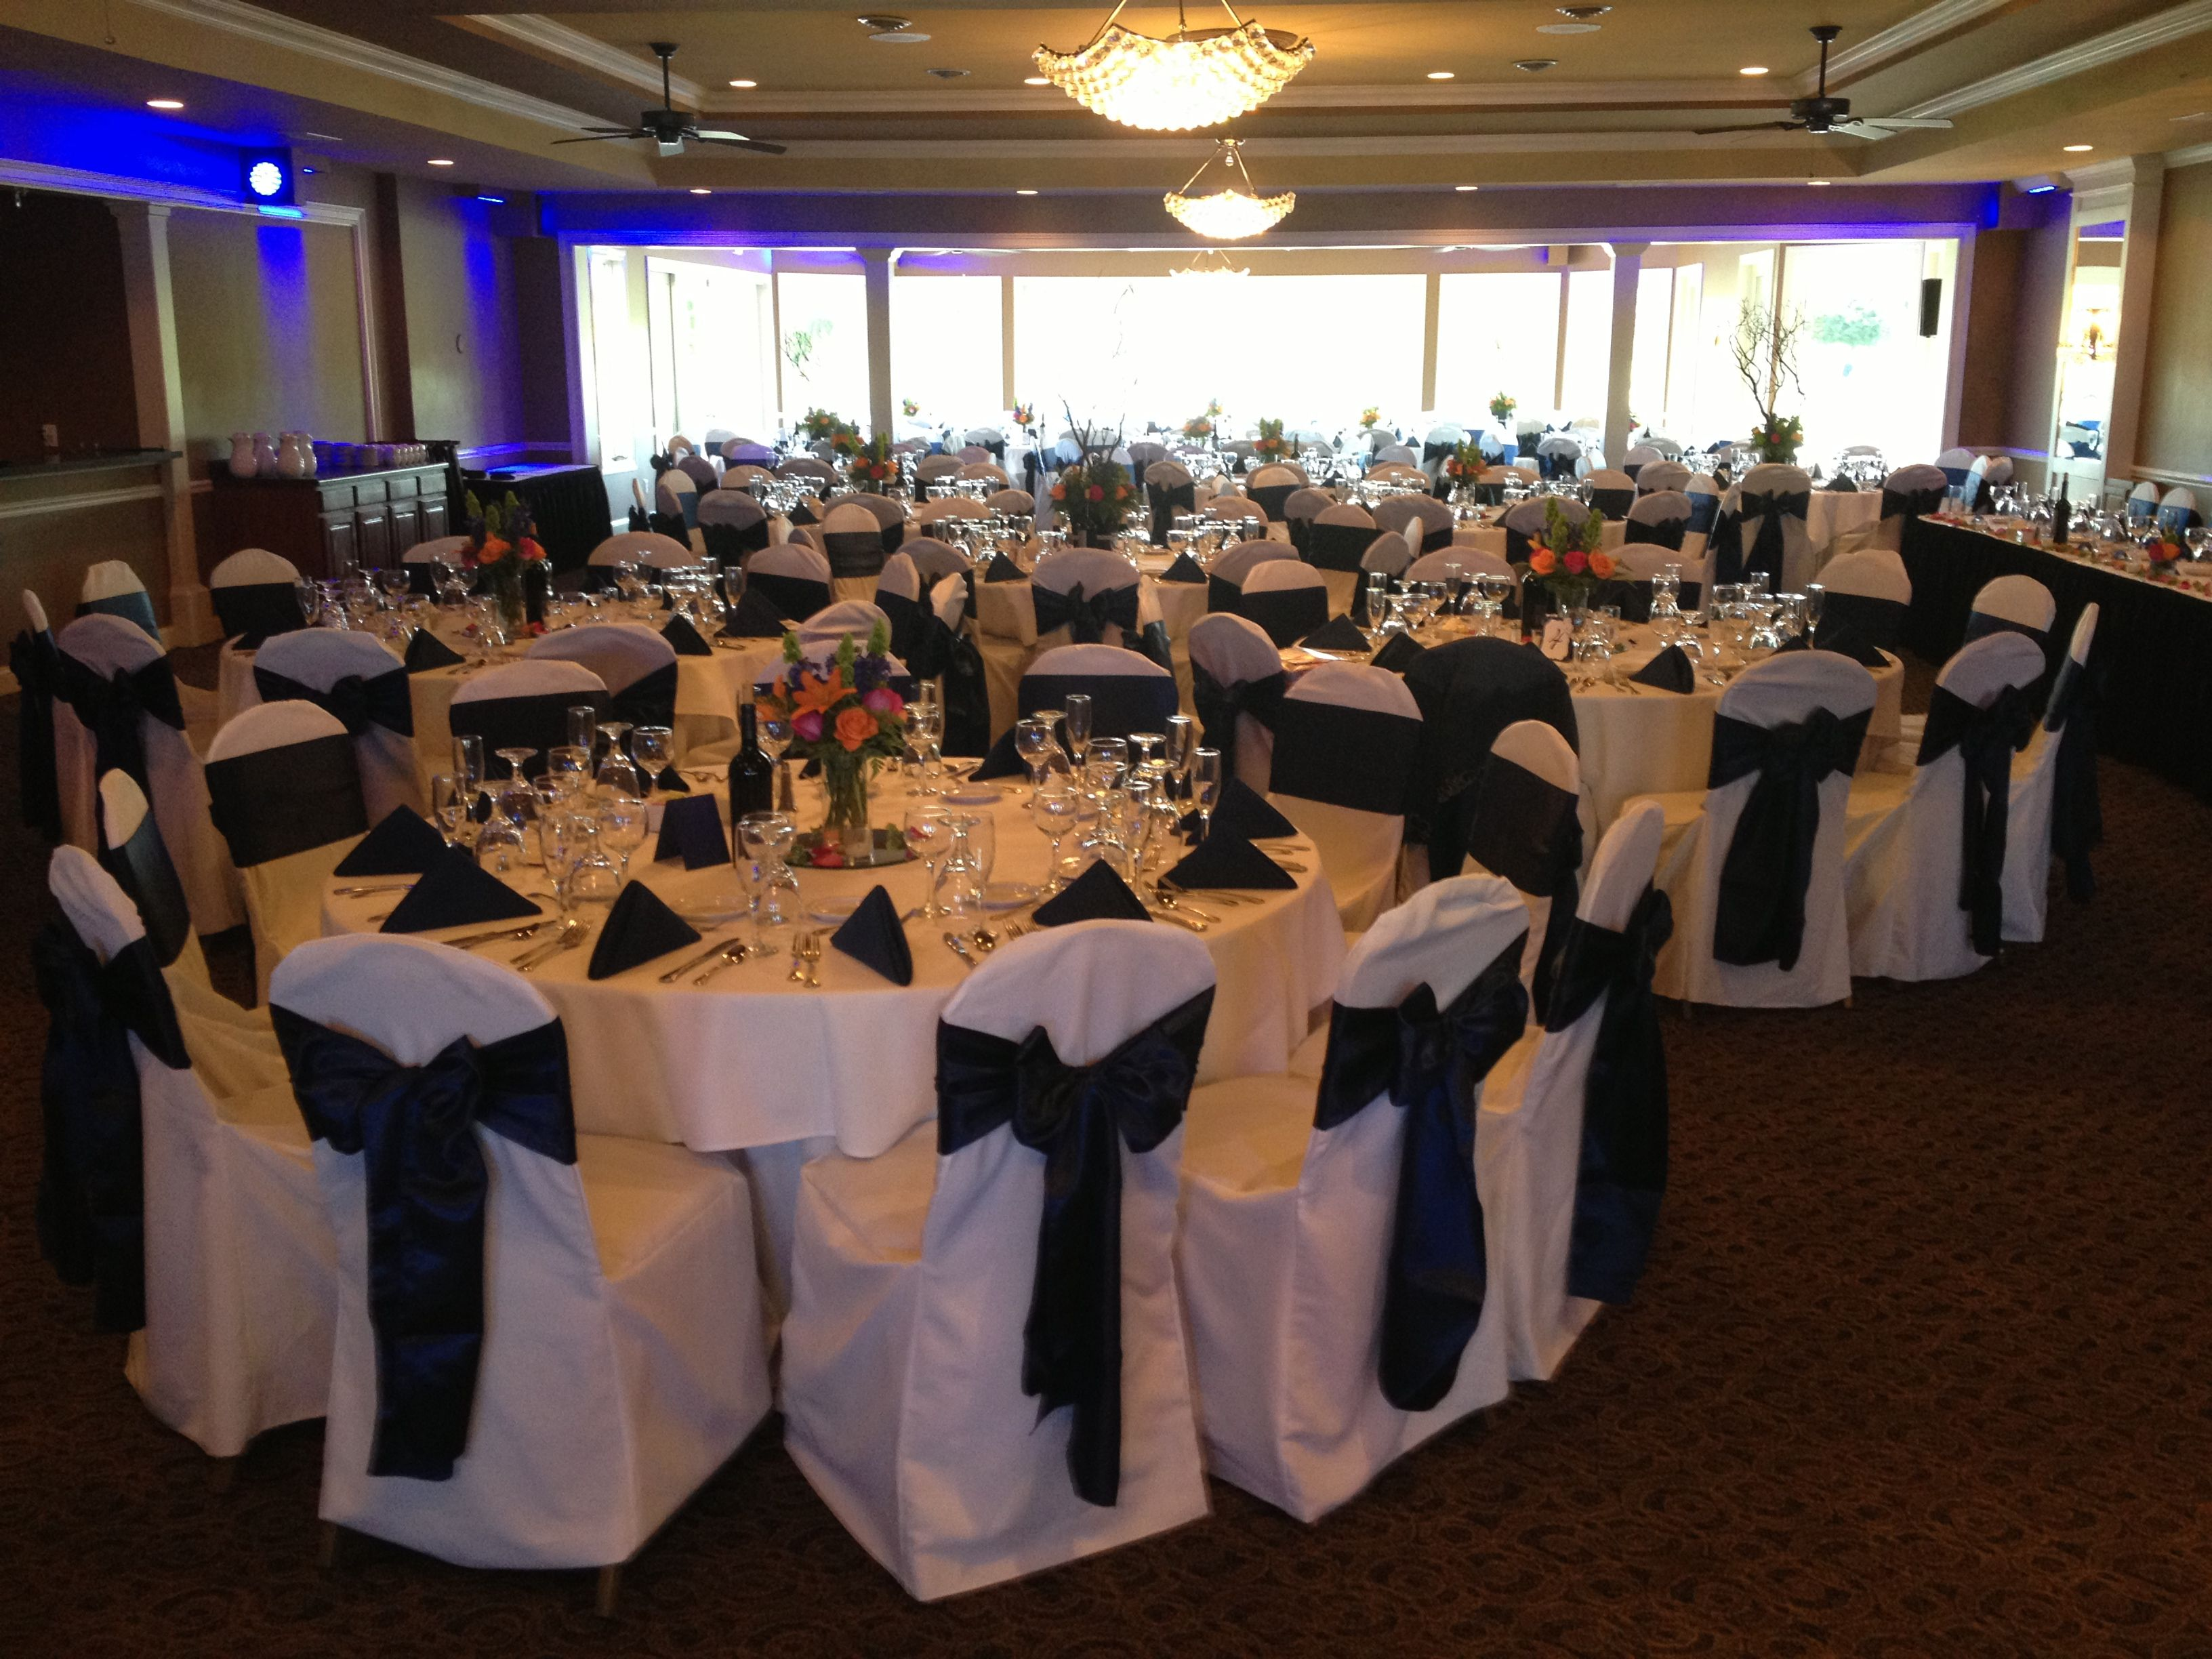 white wedding chair covers hire school desk vintage navy blue satin sash tie on poly cover